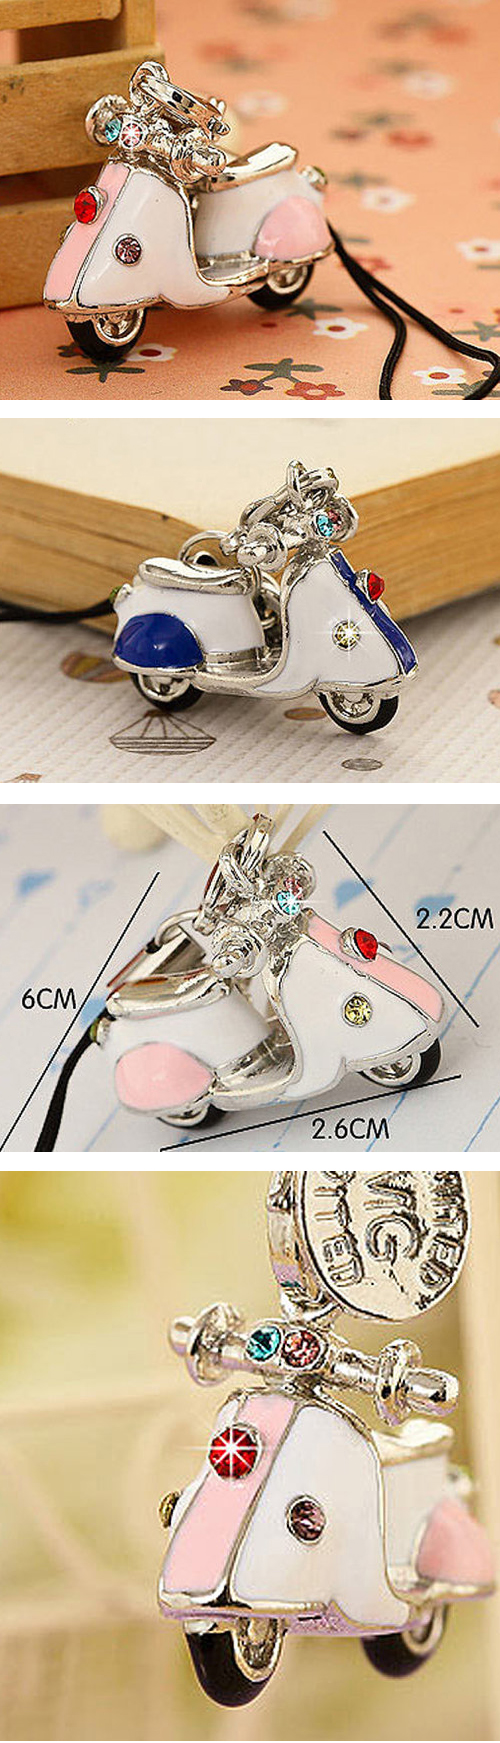 Heinkel German Scooter Vespa Lambretta Charm Jewelry